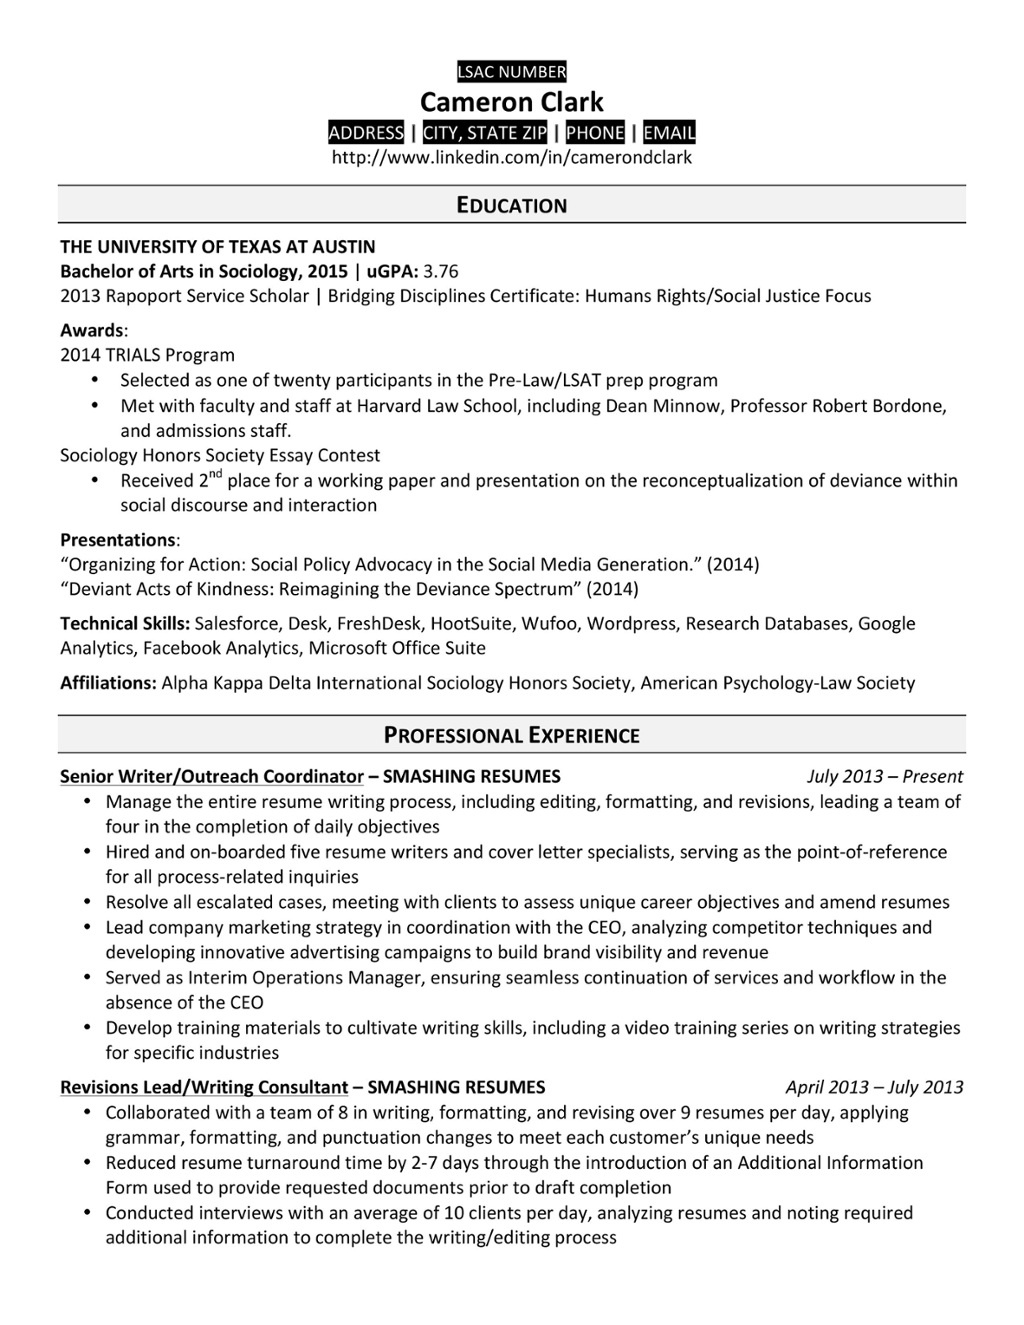 law school resume templates prepping your for of university at interests dataset email Resume Interests For Law Resume